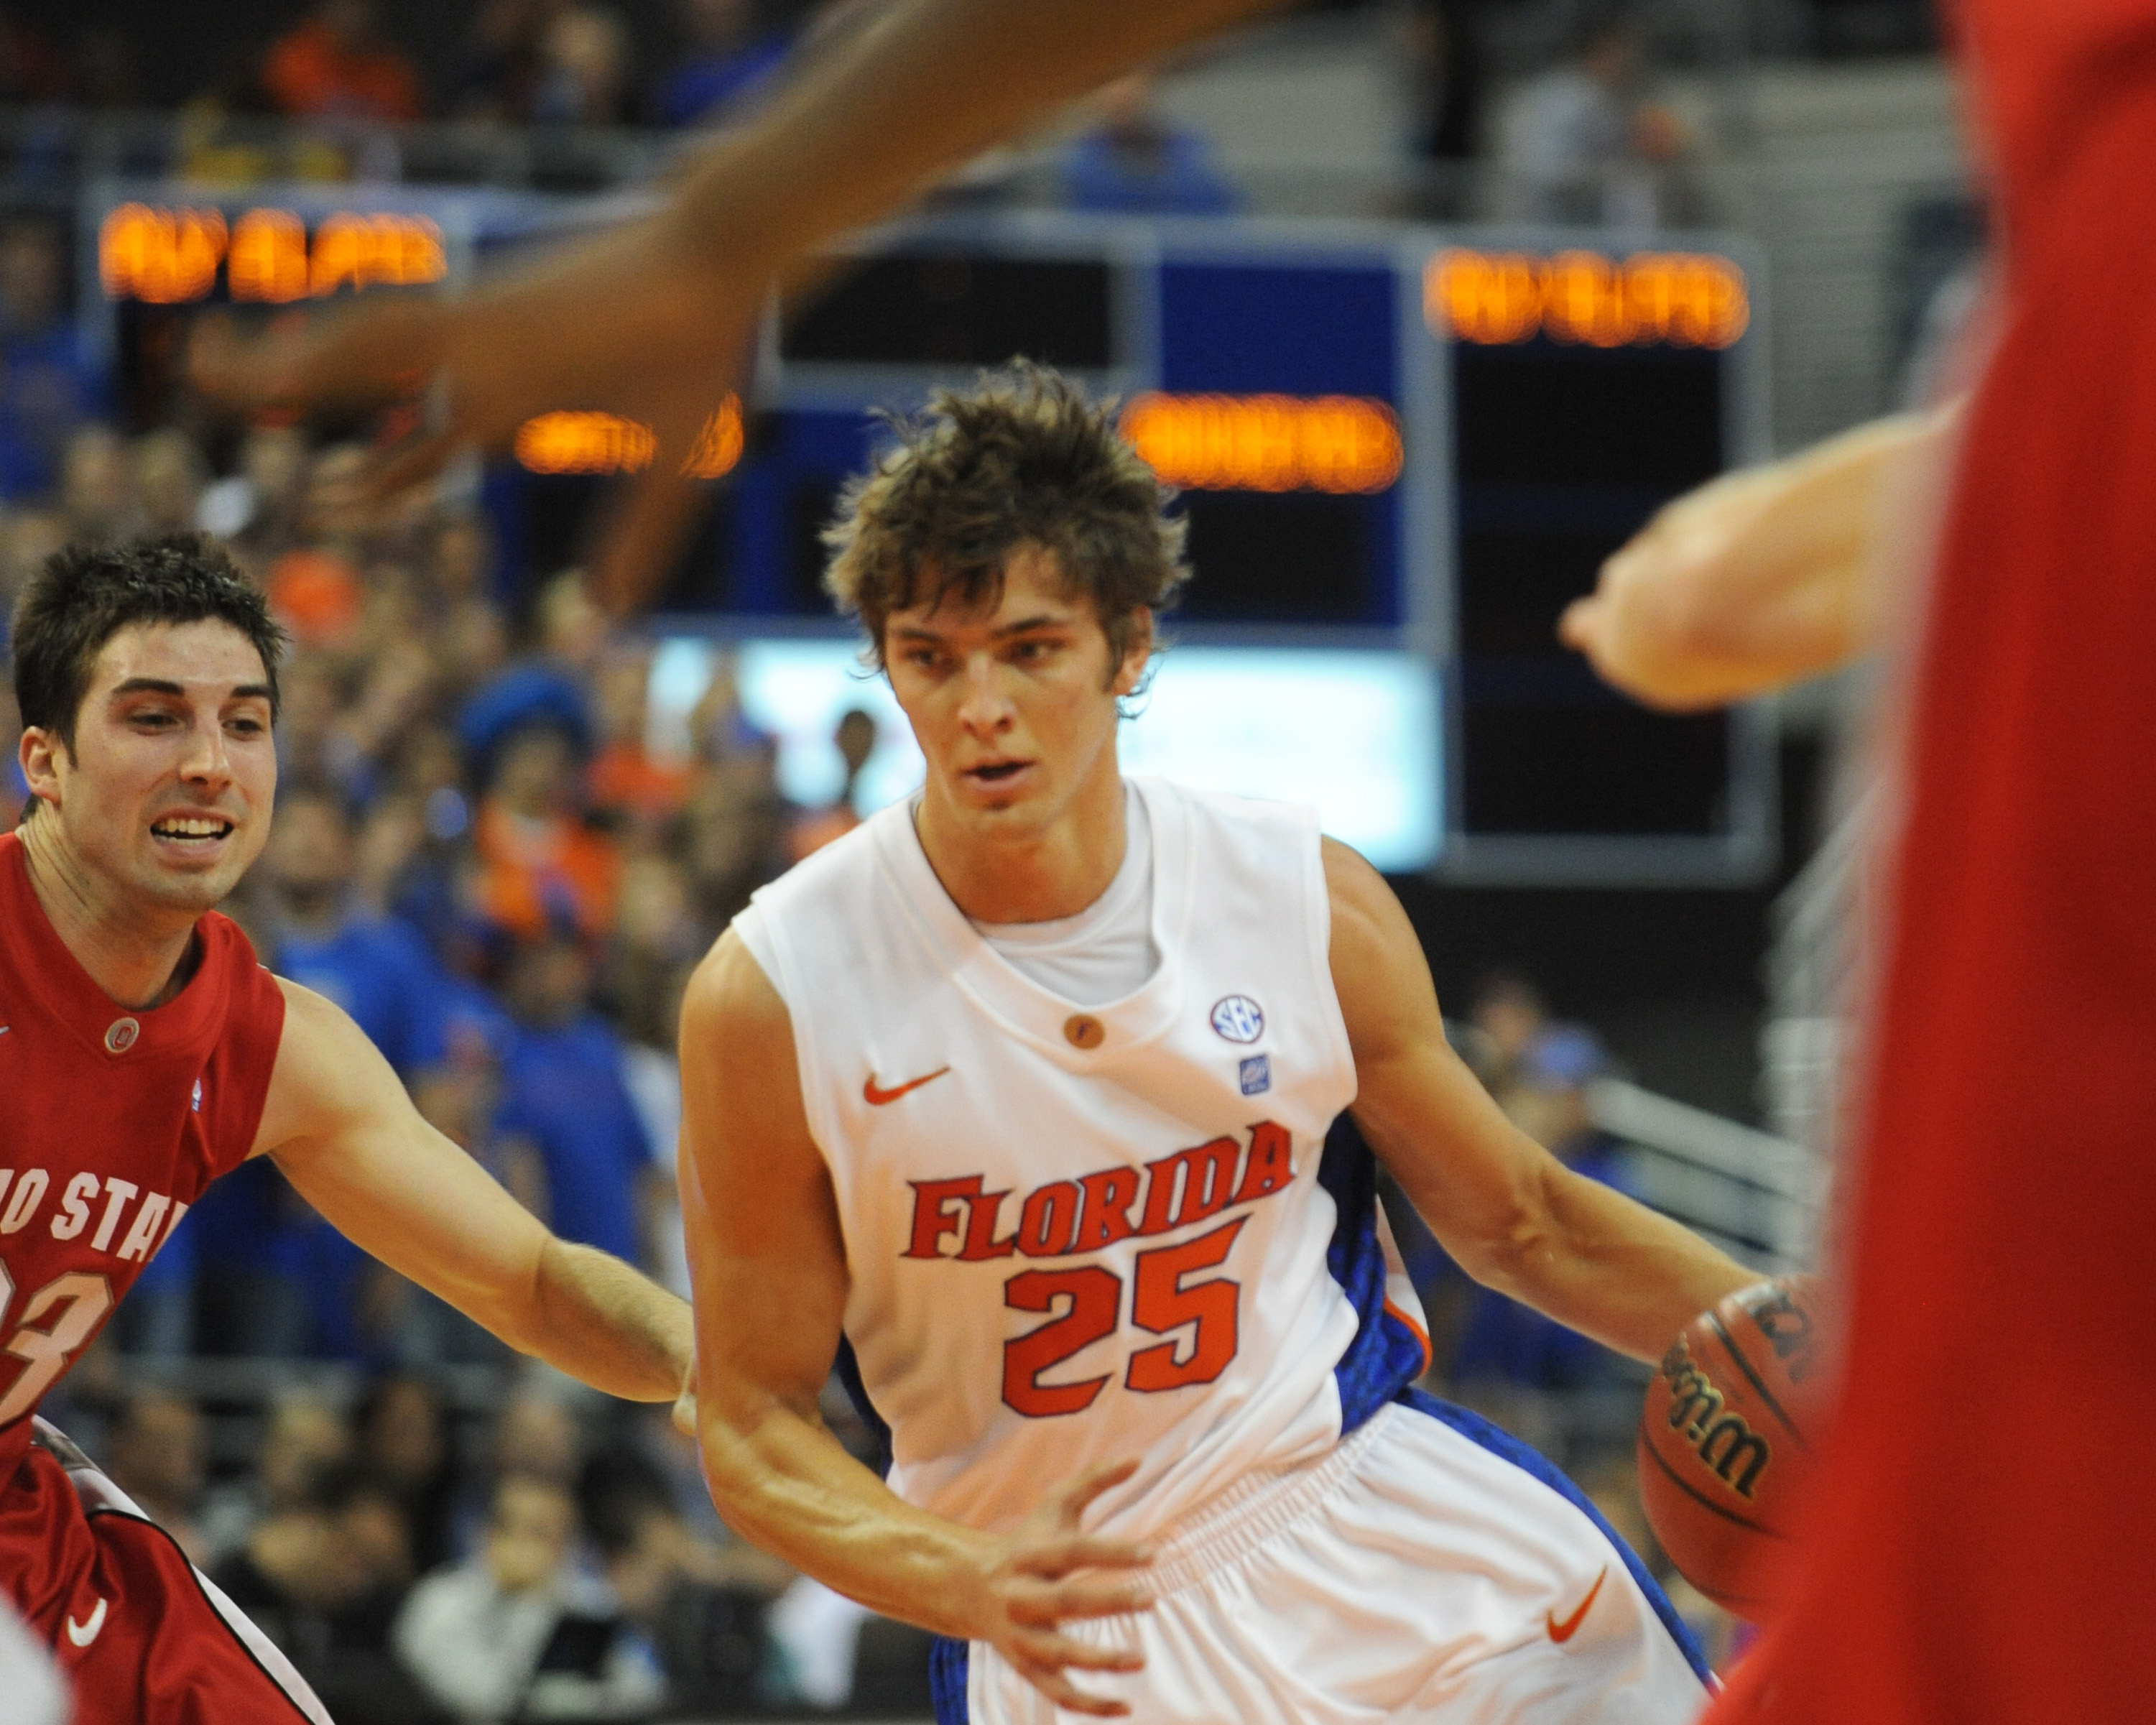 GAINESVILLE, FL - NOVEMBER 16: Forward Chandler Parsons #25  of the Florida Gators drives upcourt against the Ohio State Buckeyes November 16, 2010 at the Stephen C. O'Connell Center in Gainesville, Florida.  (Photo by Al Messerschmidt/Getty Images)